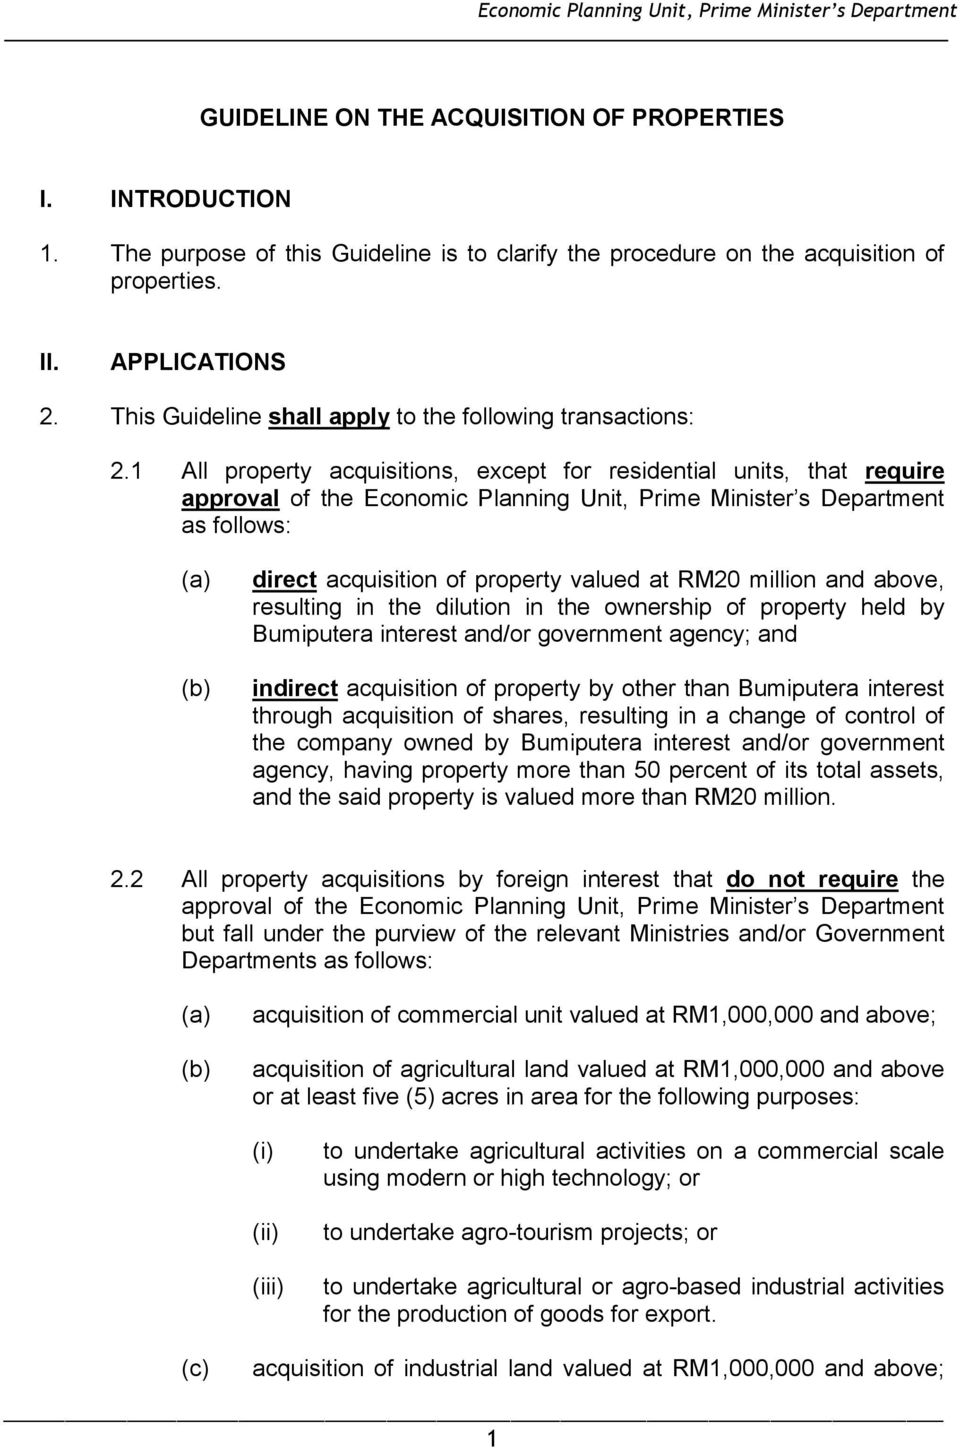 1 All property acquisitions, except for residential units, that require approval of the Economic Planning Unit, Prime Minister s Department as follows: direct acquisition of property valued at RM20